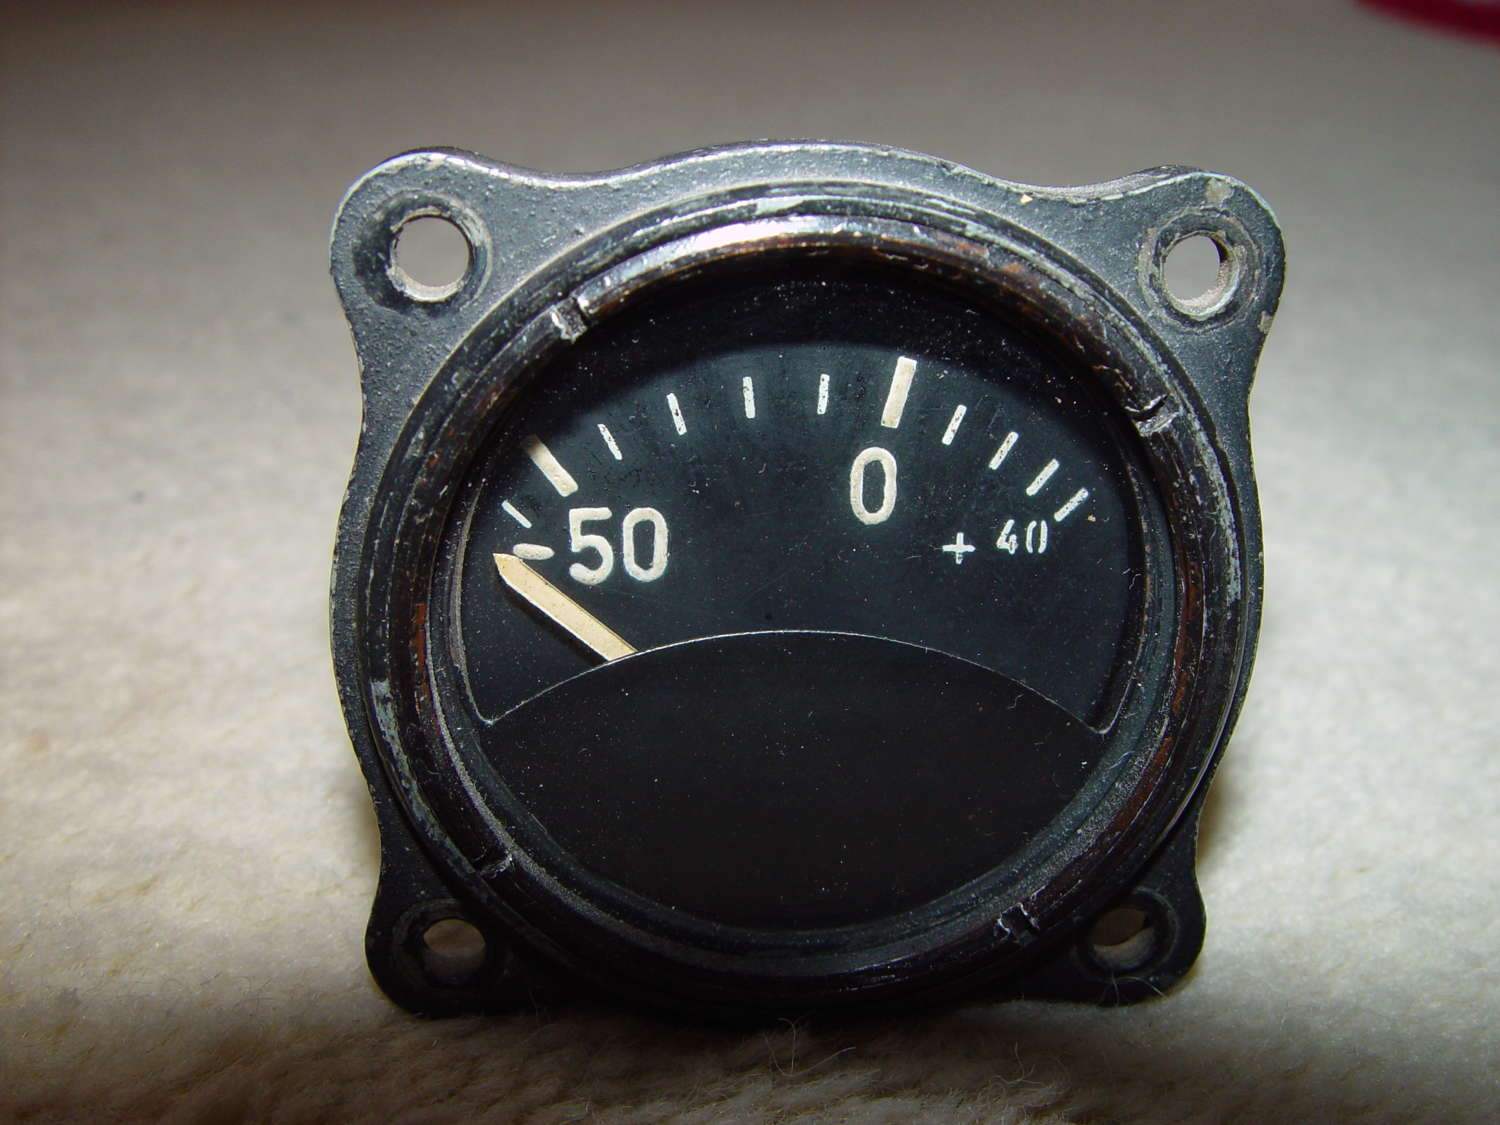 German Luftwaffe external temperature instrument -50/+40